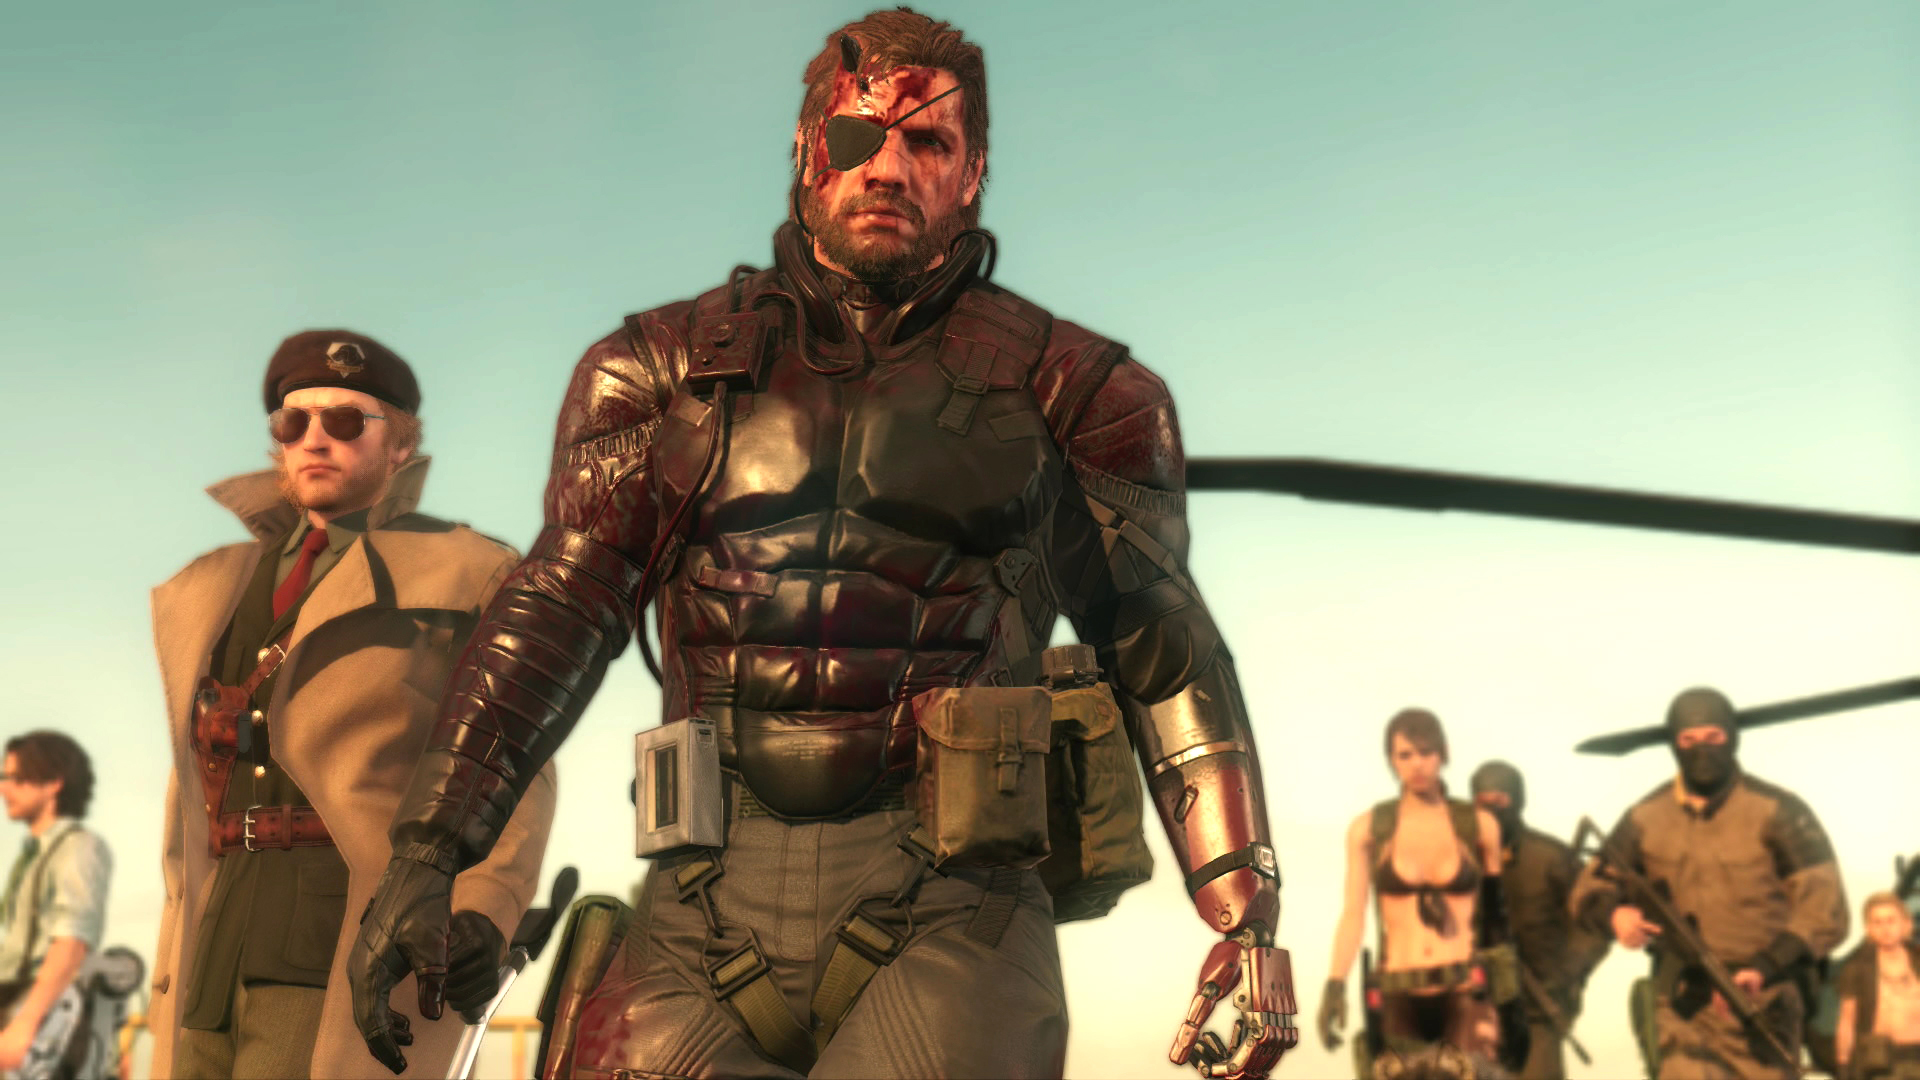 PlayStation Plus subscribers get MGS 5: The Phantom Pain free in October